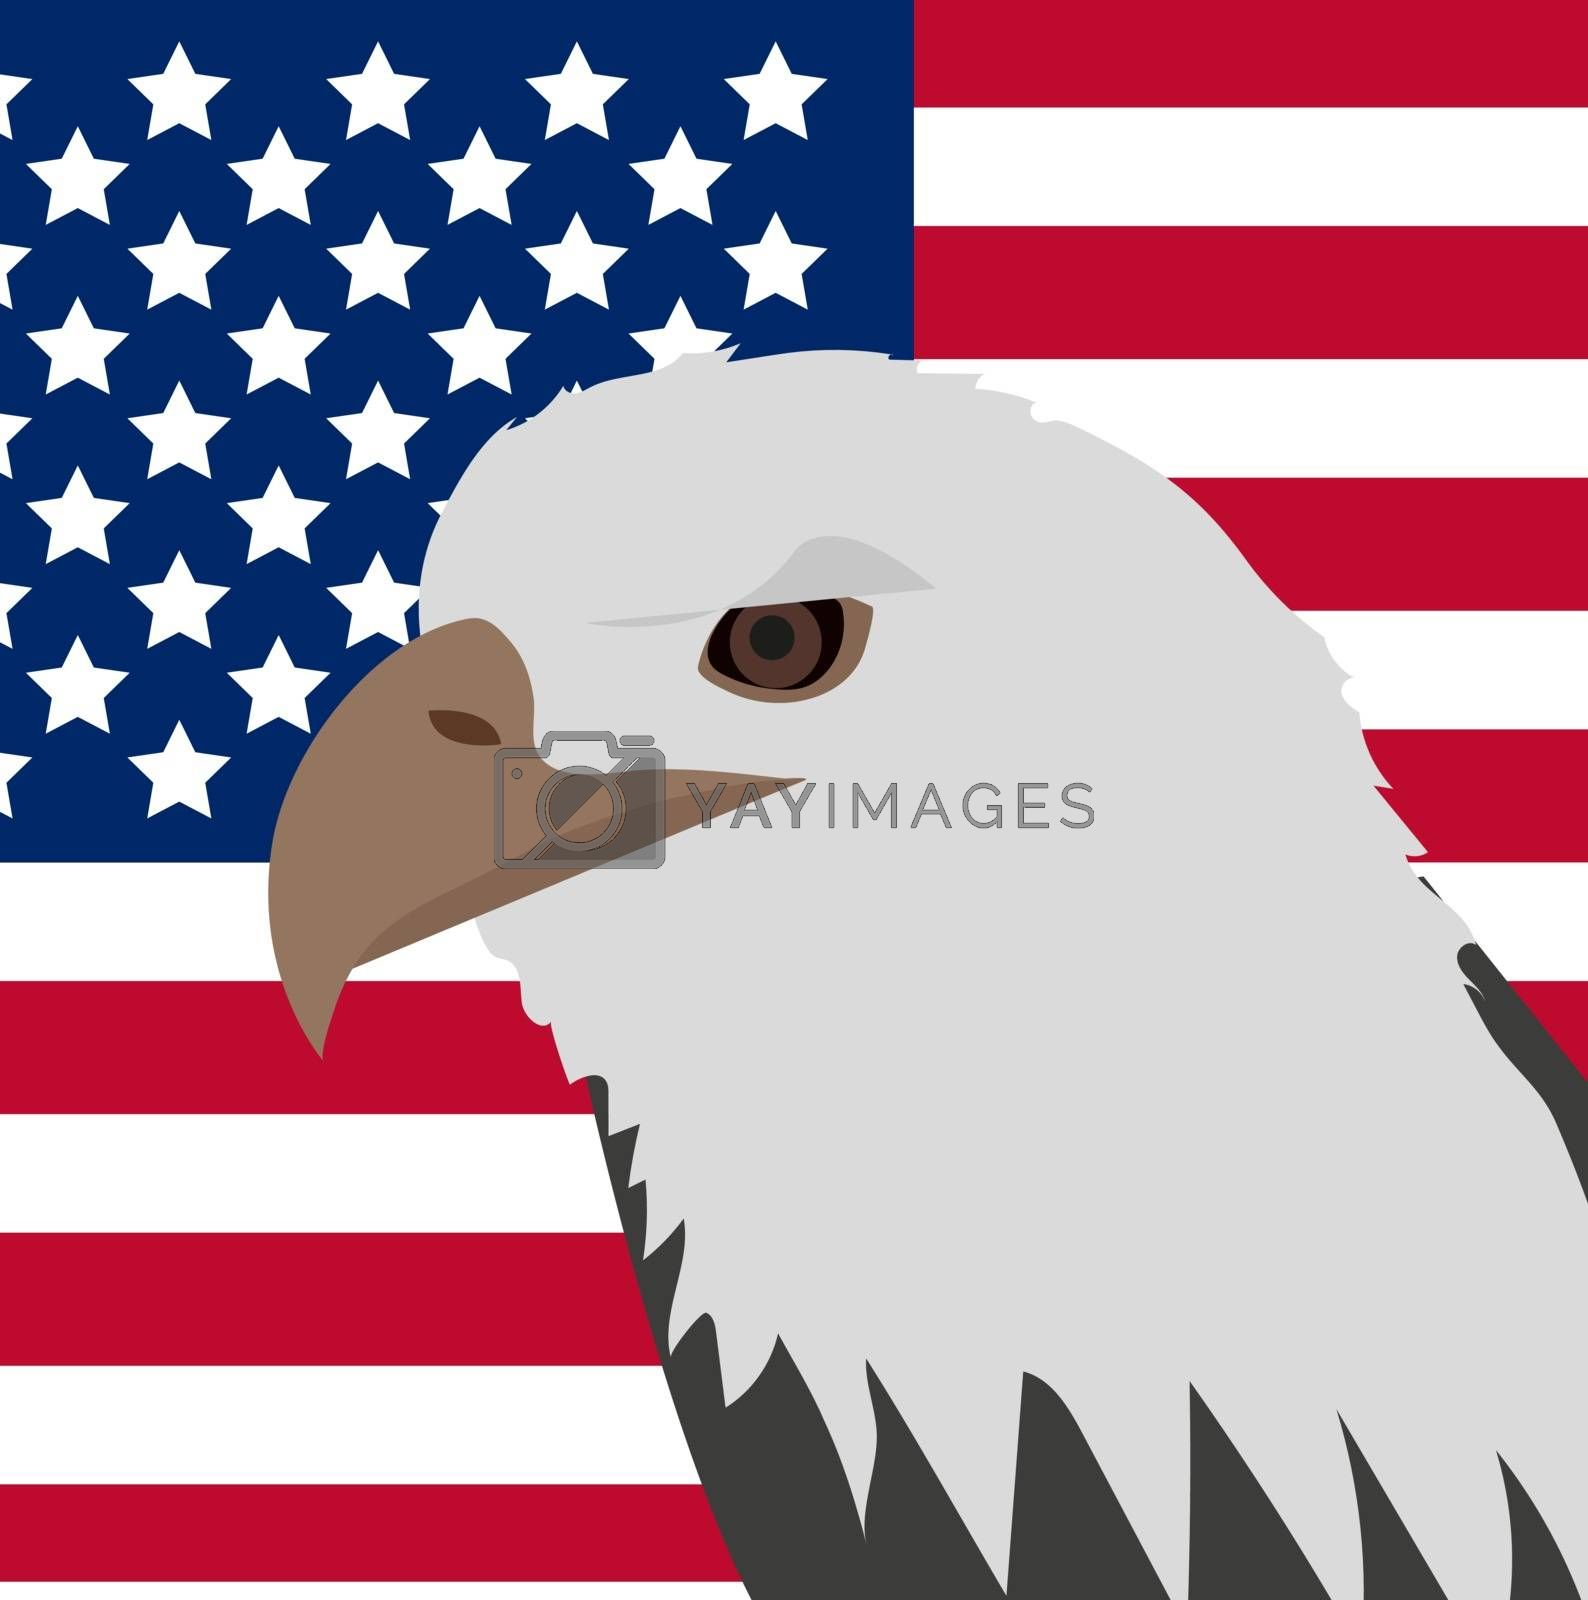 Eagle on the background of the American flag icon, flat style. 4th july concept. Vector illustration